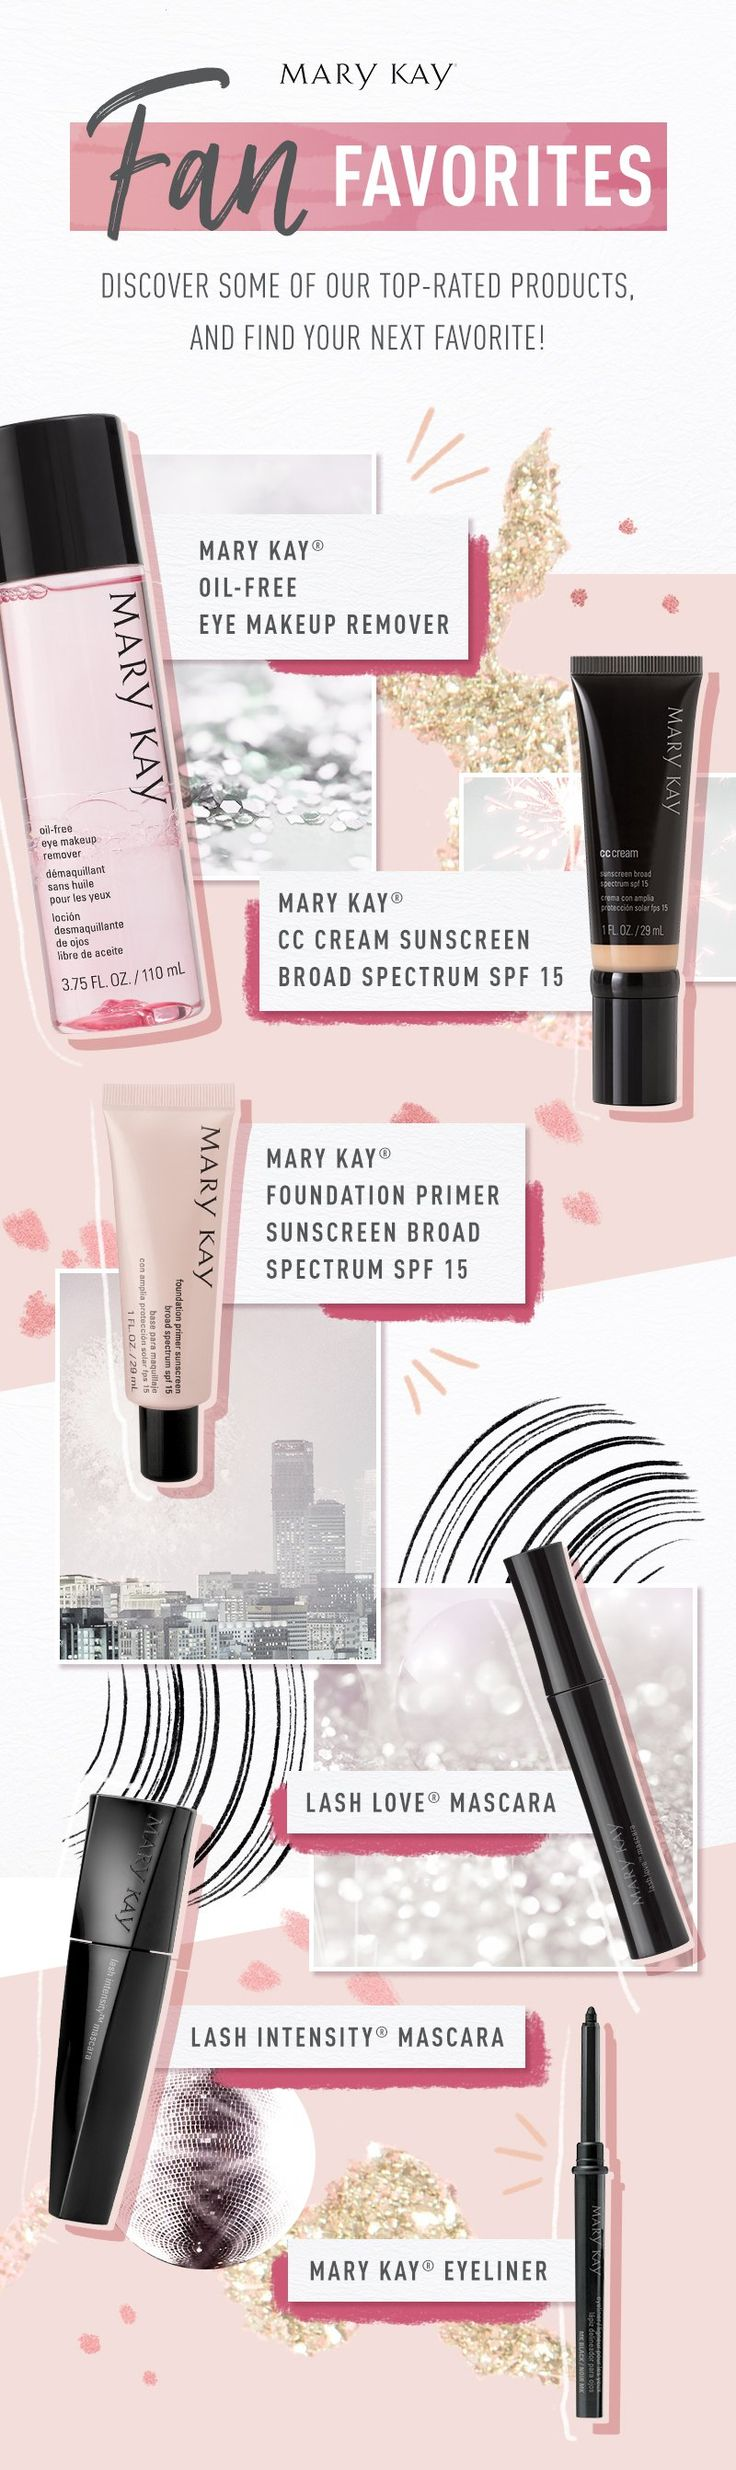 Only the best for you! From makeup to skin care, women